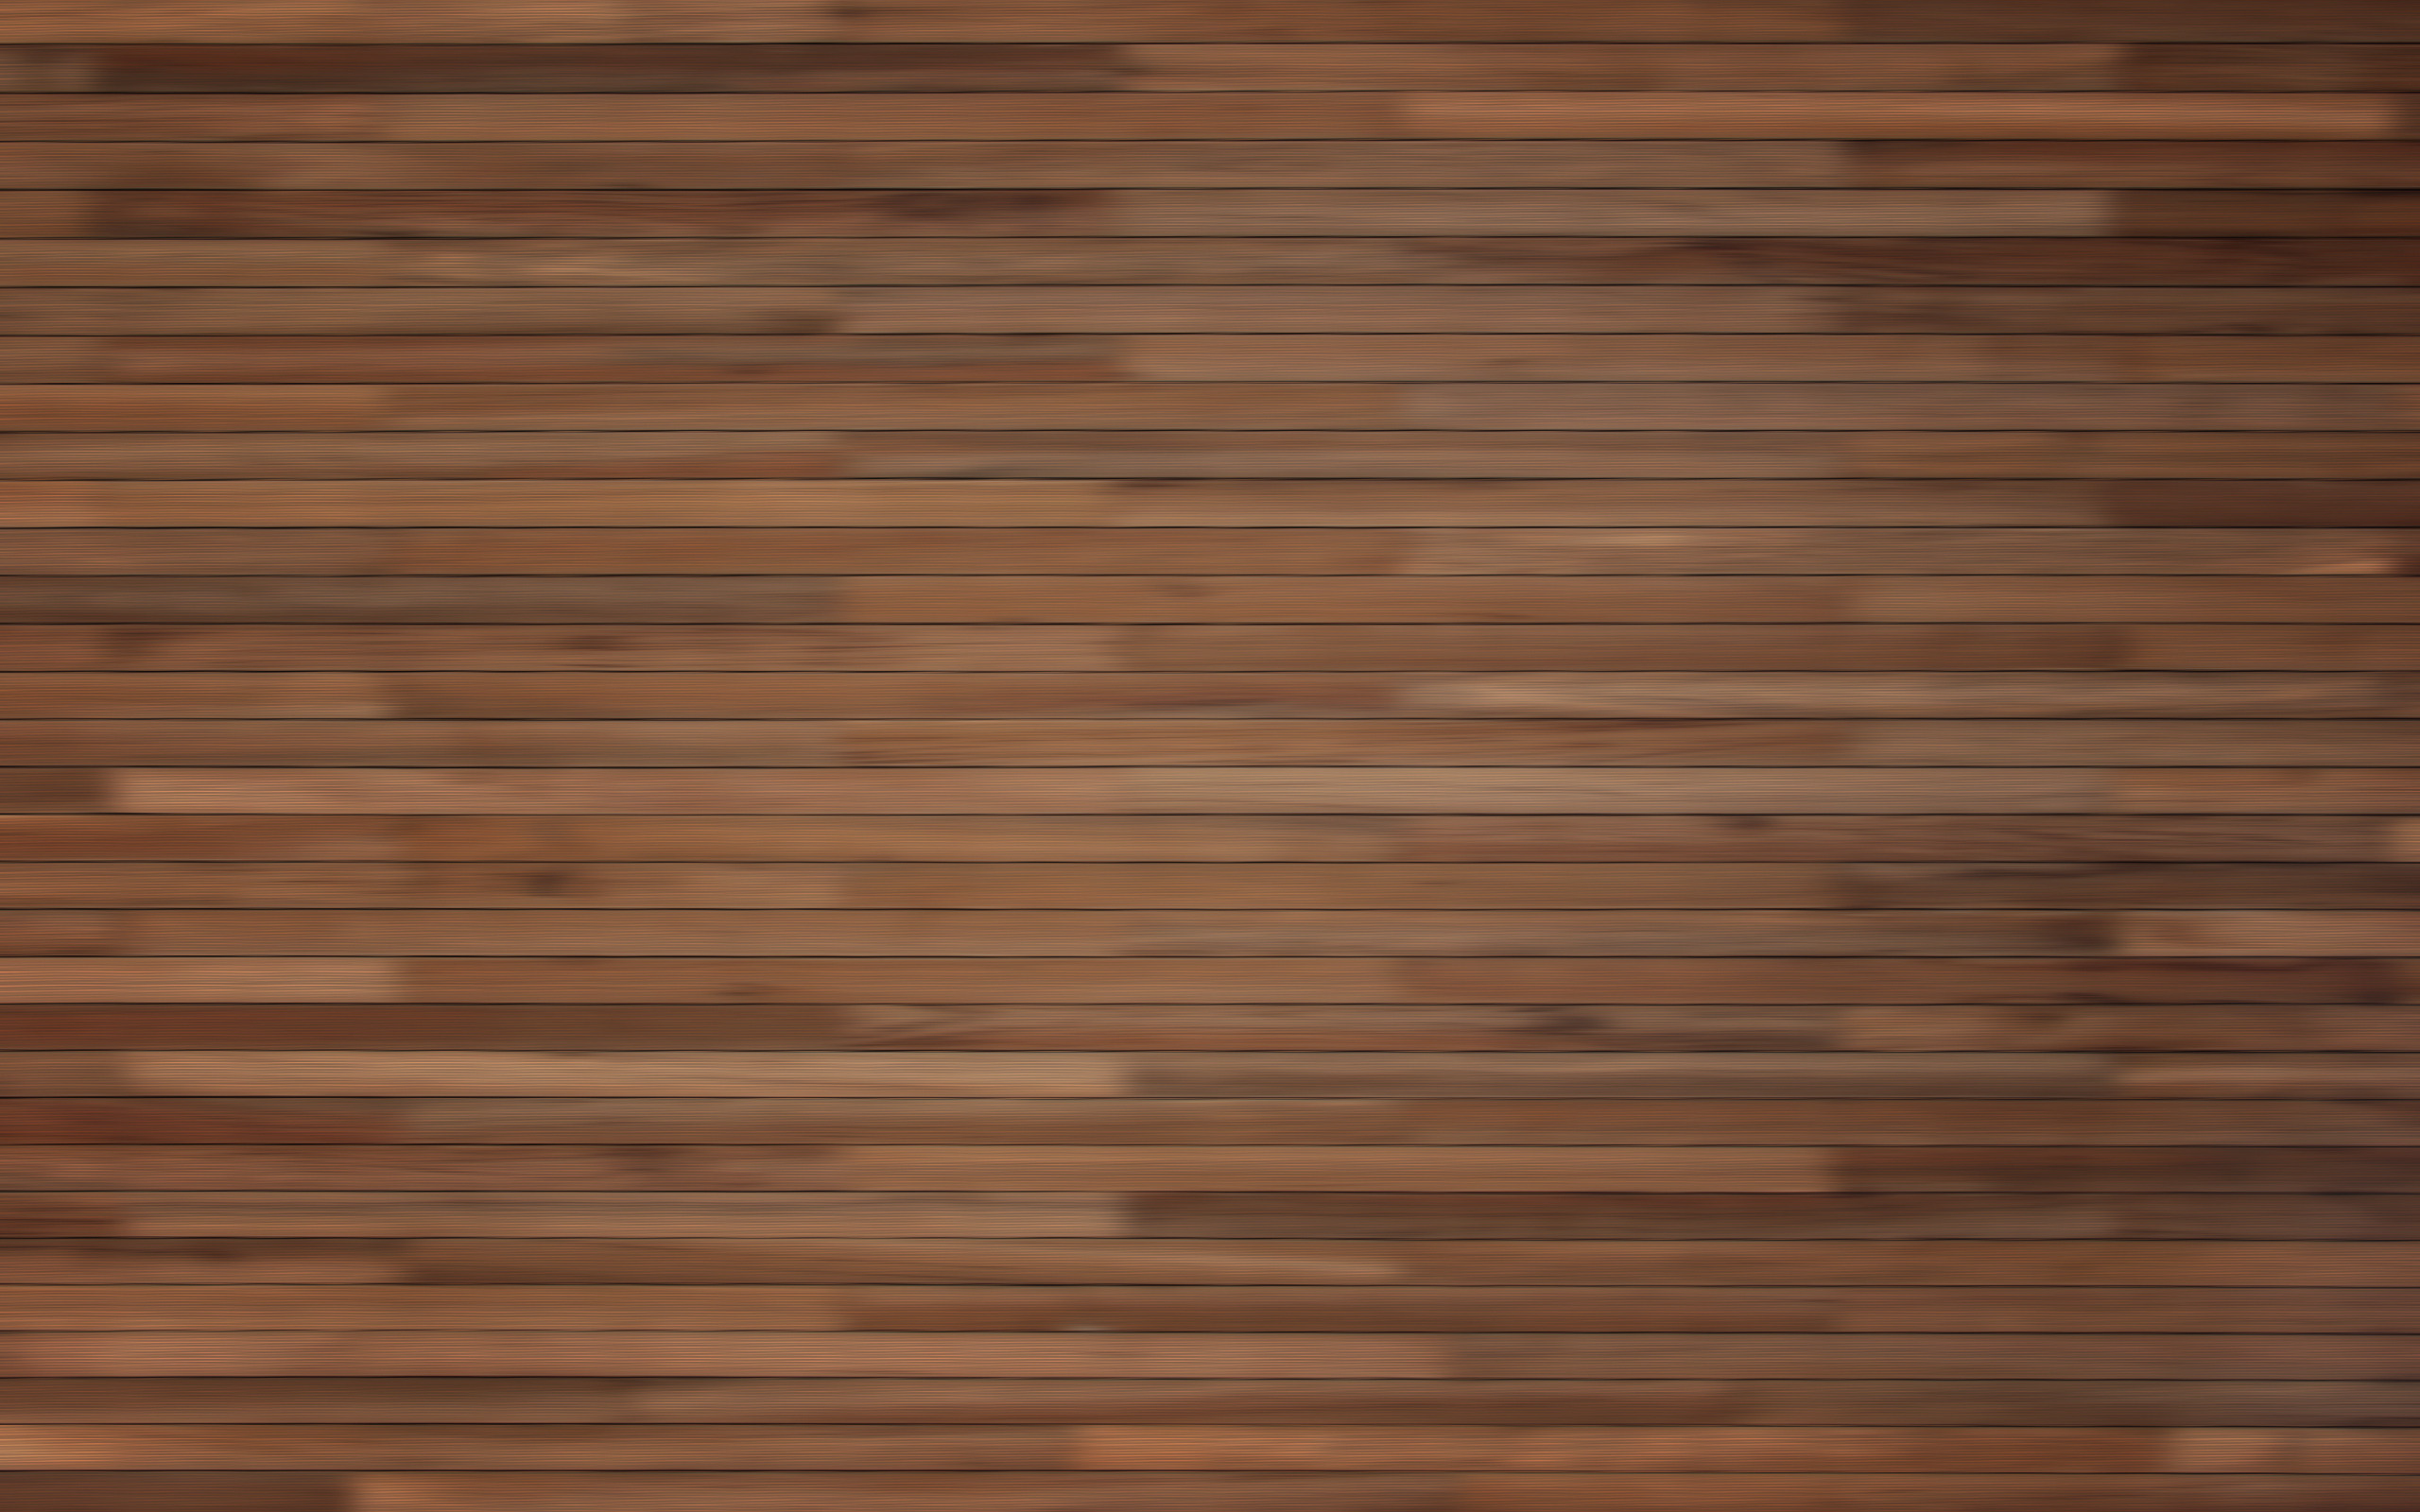 Wood floor texture wallpaper 2560x1600 55889 for Hardwood decking planks